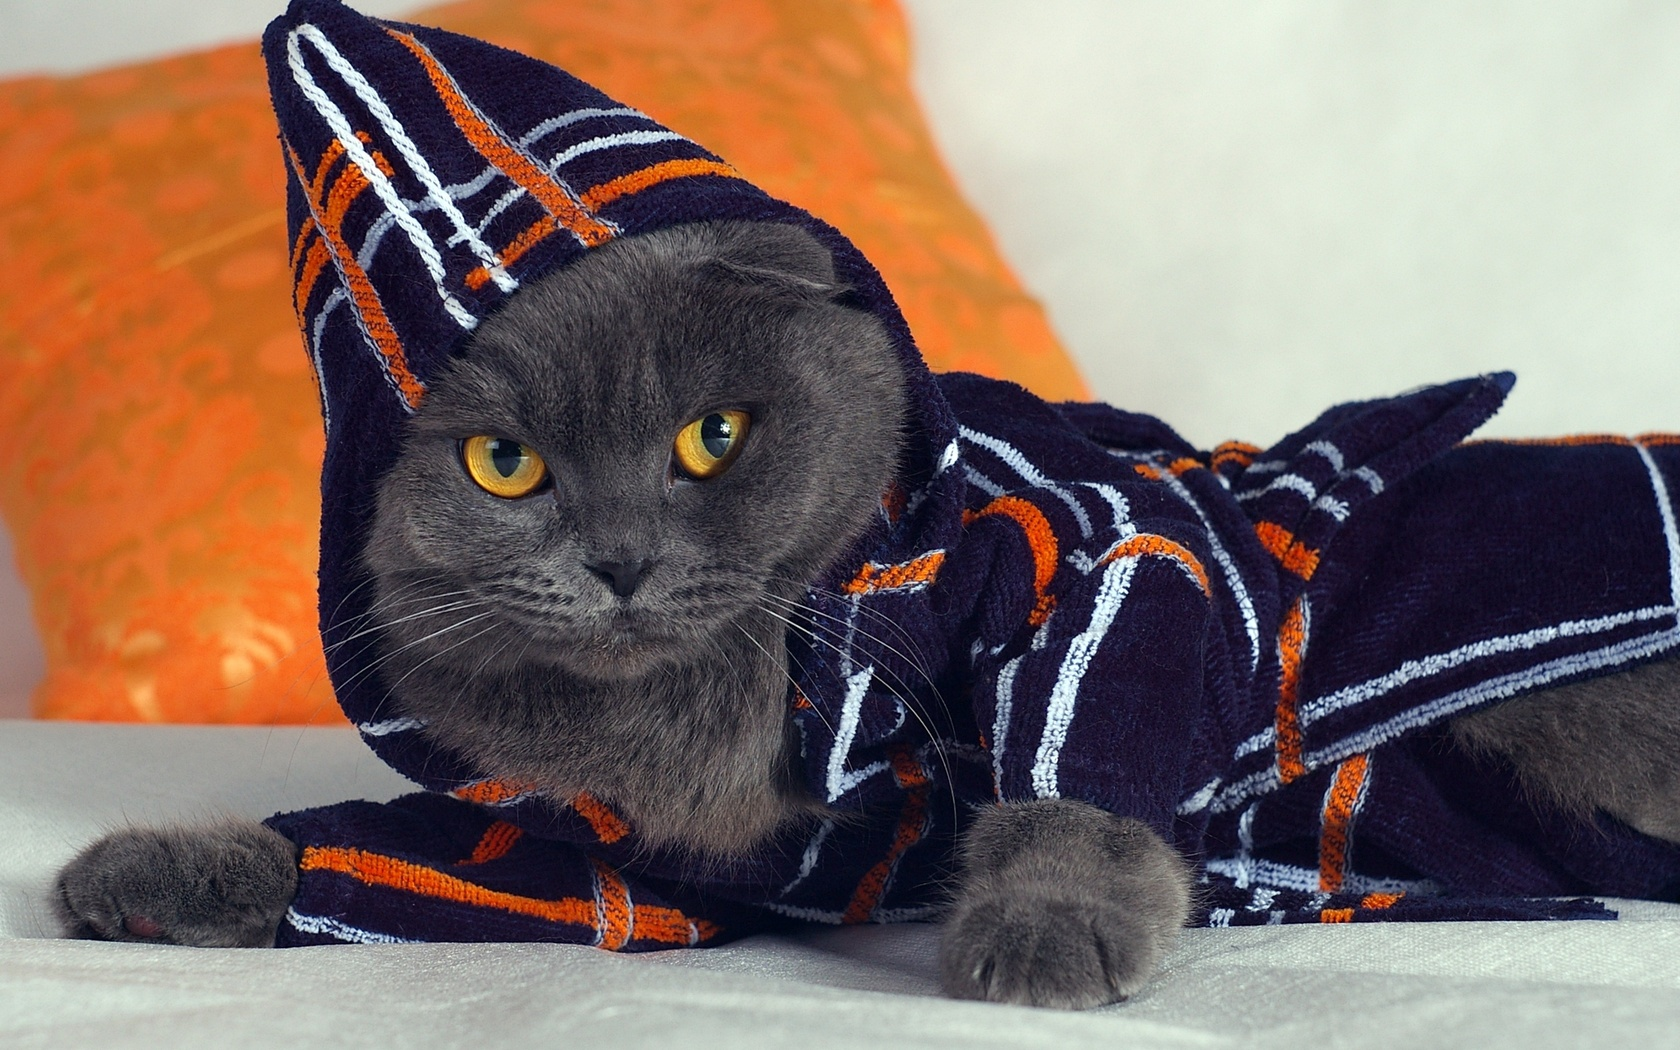 Gray cat wearing a robe